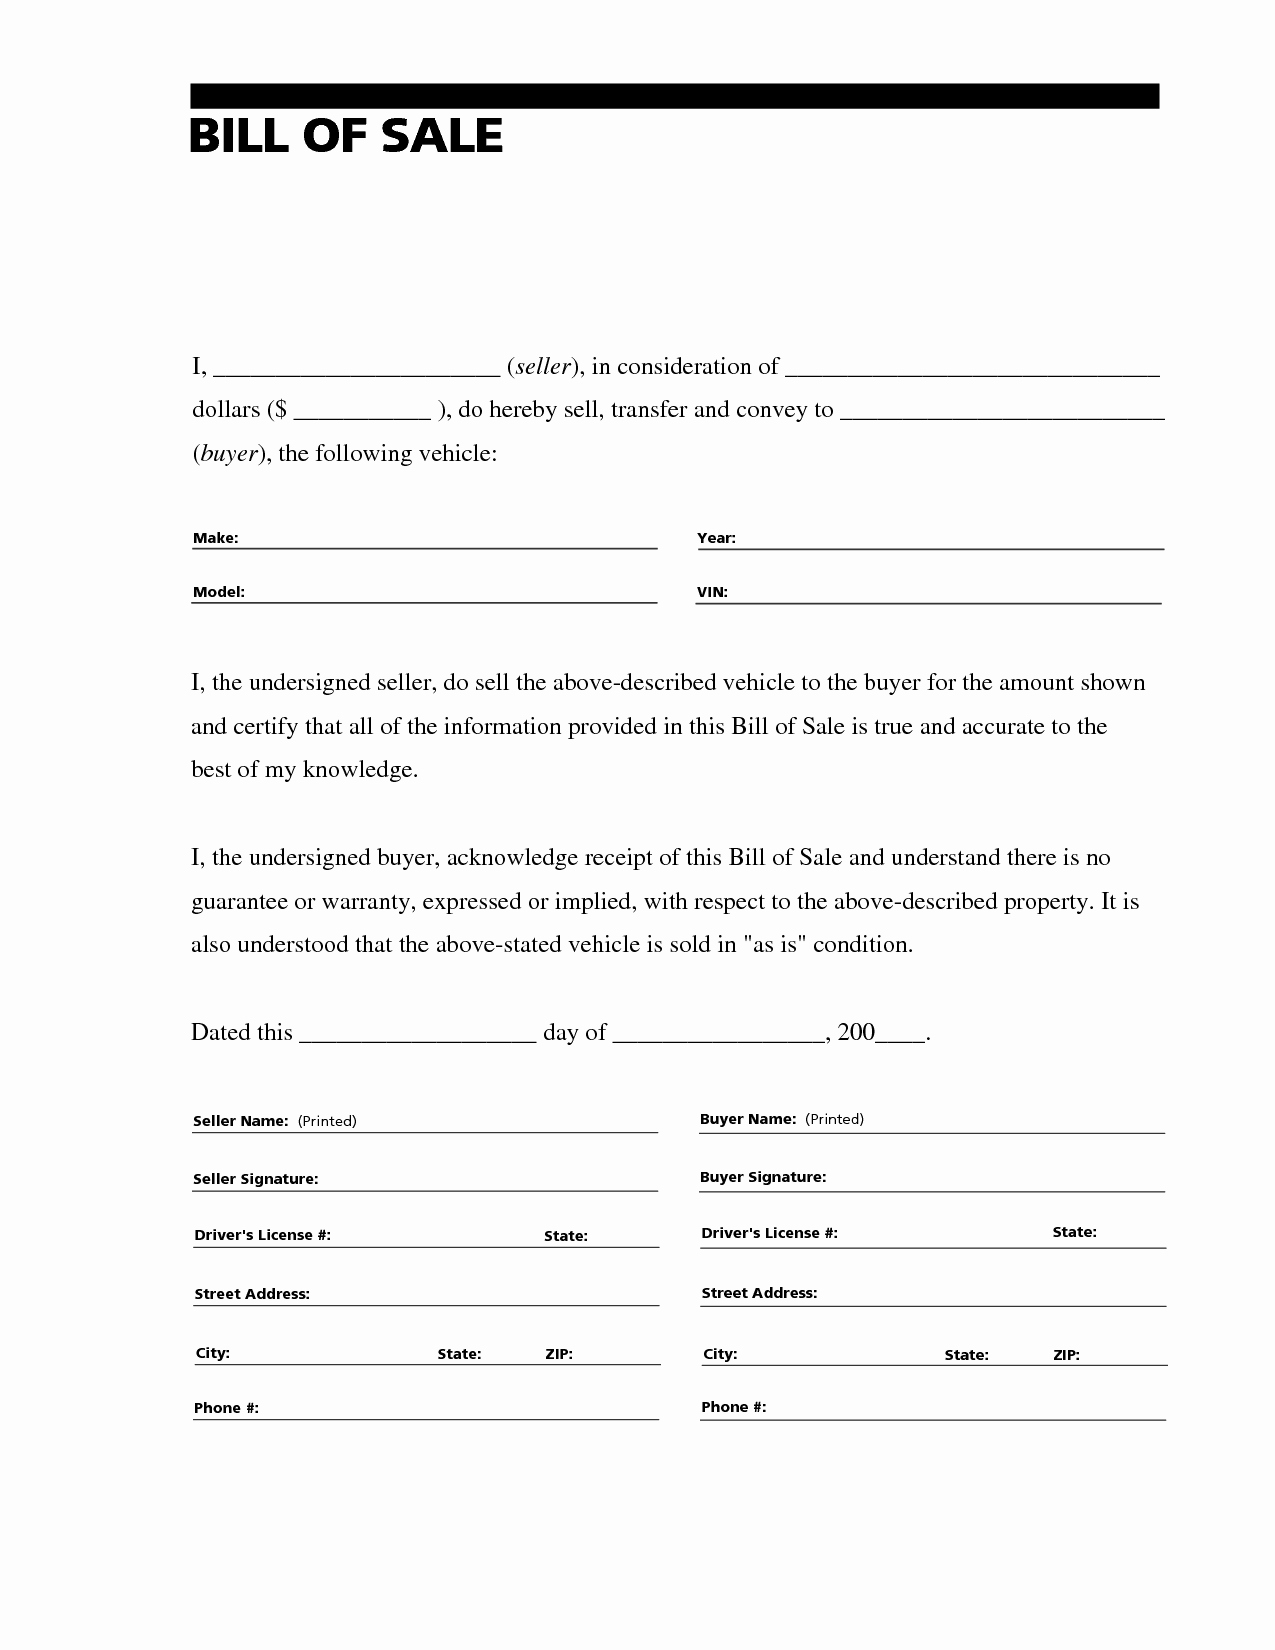 Bill Of Sale Sample Document Awesome Printable Sample Bill Of Sale Templates form